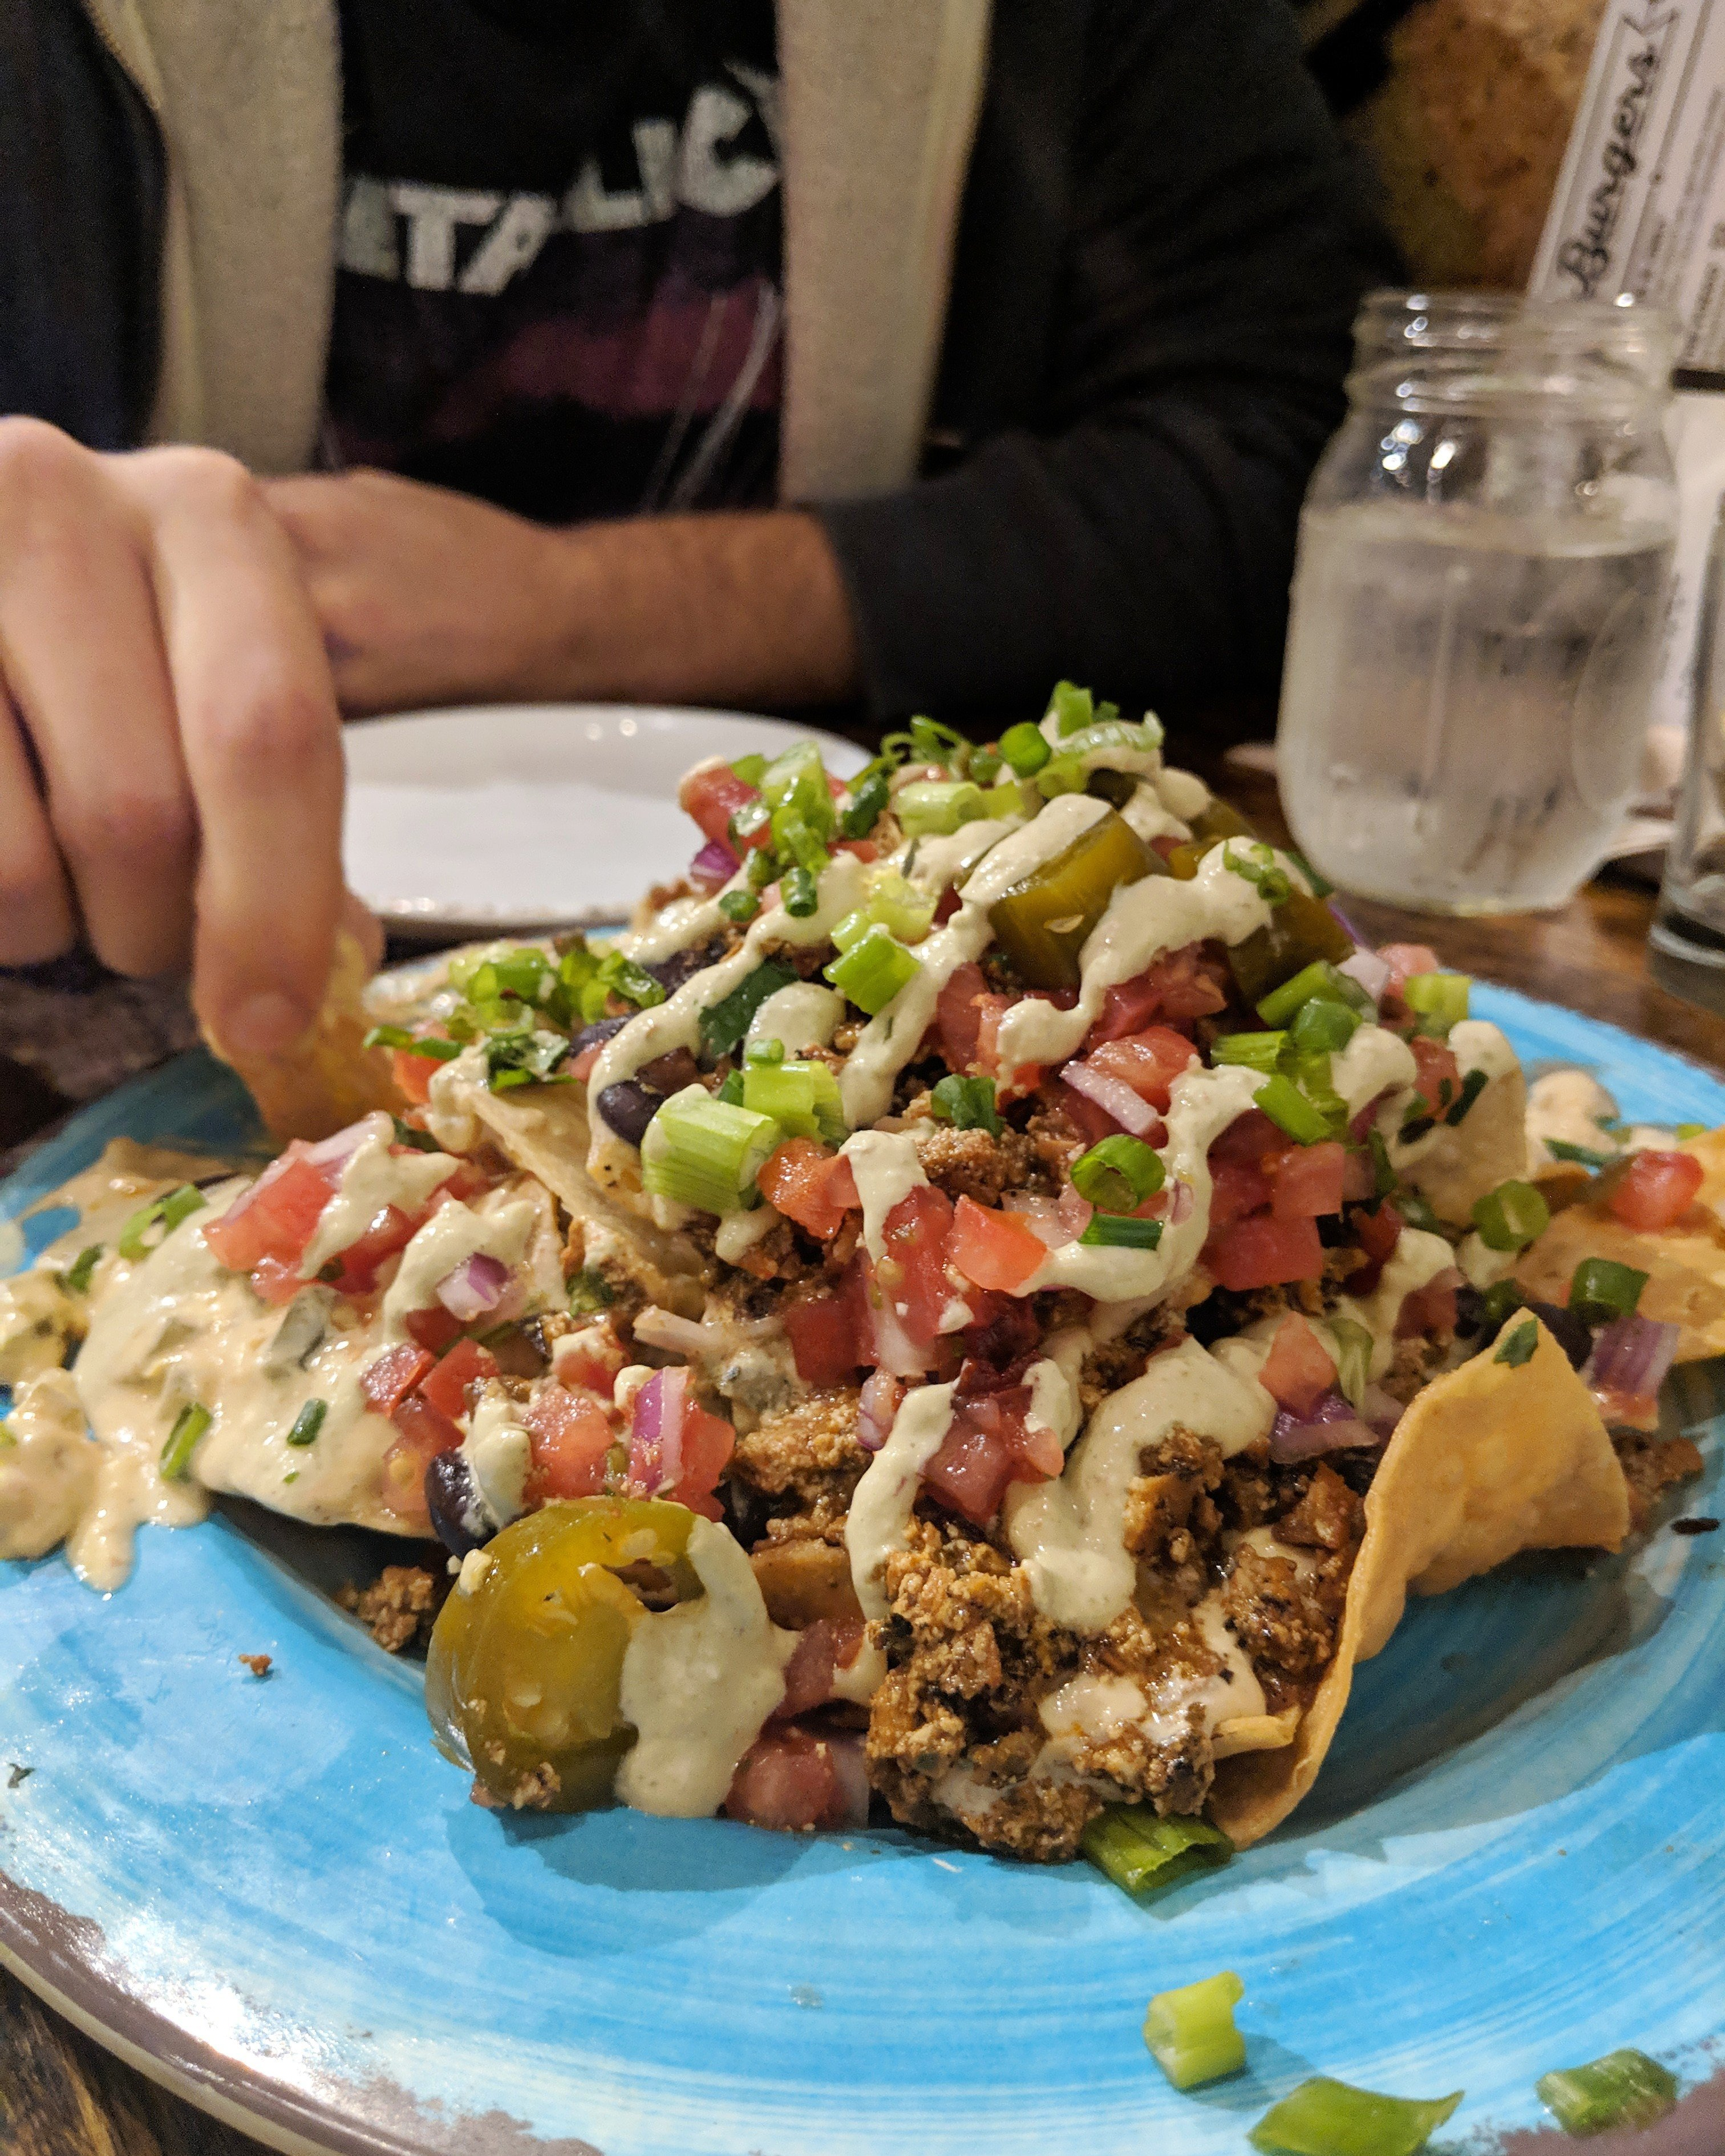 Vegan nachos at Crafted in Greensboro, NC